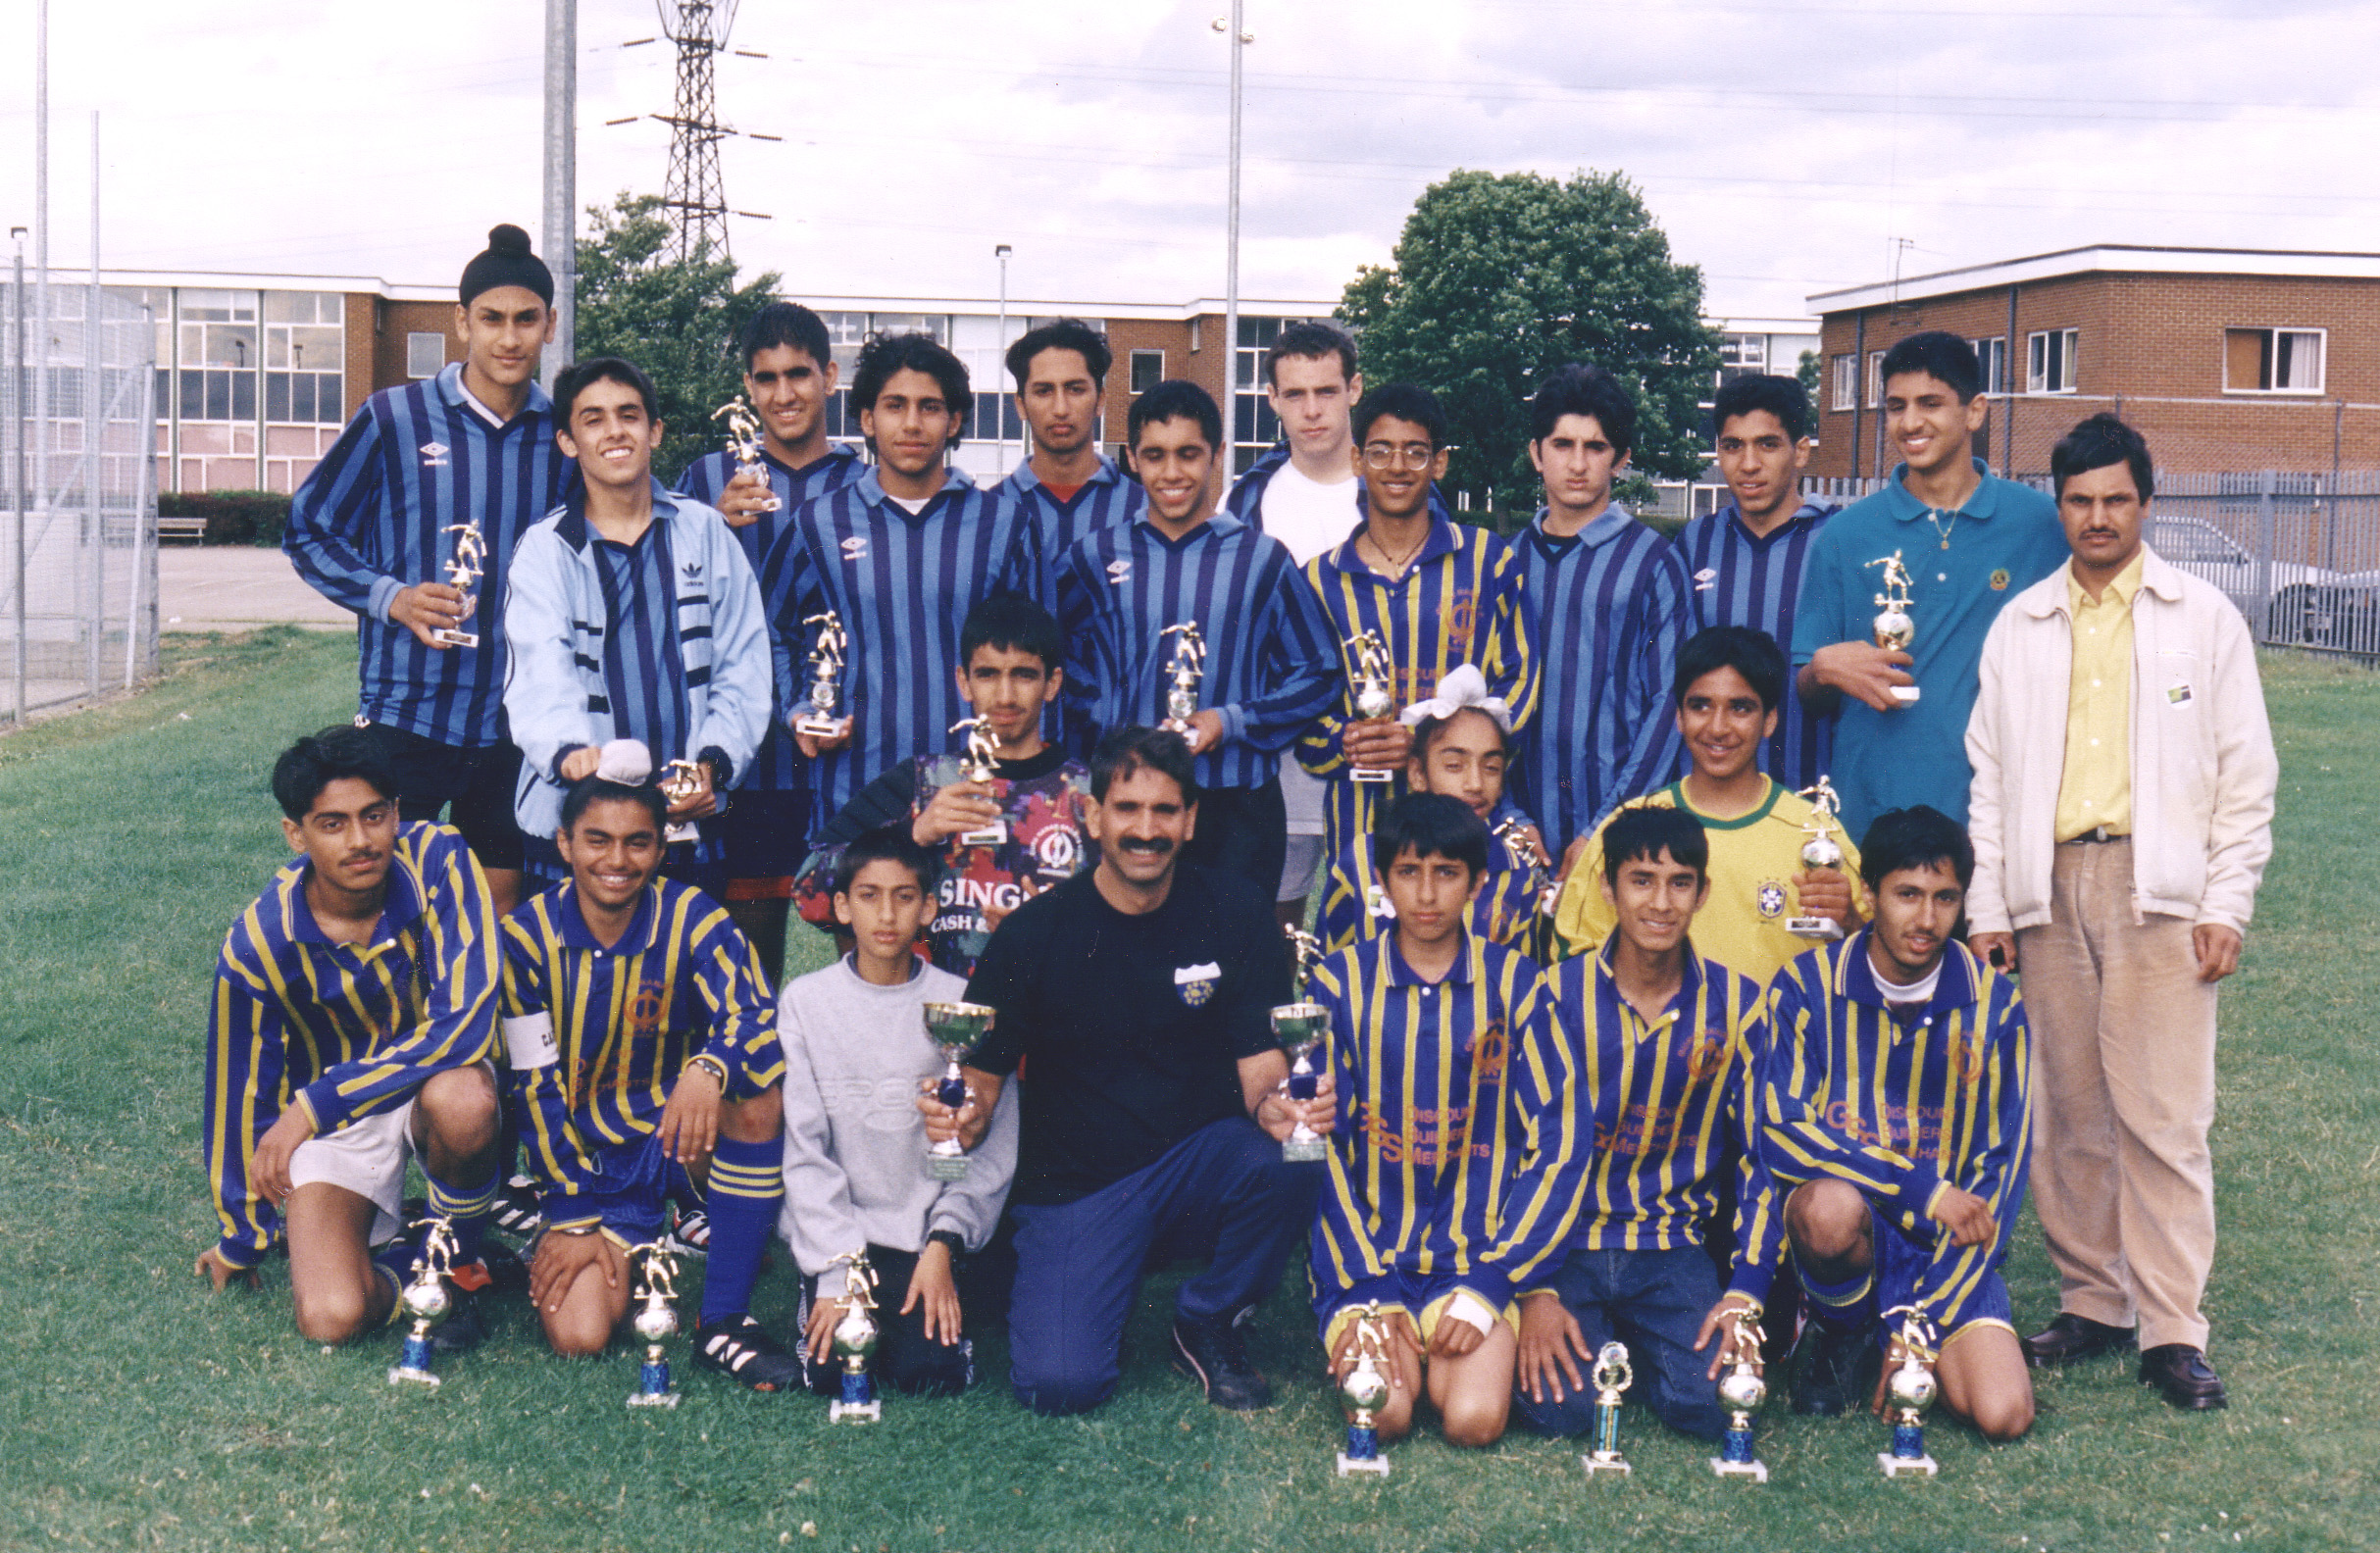 1997 Bedford Youth Tournament U13's & U15's